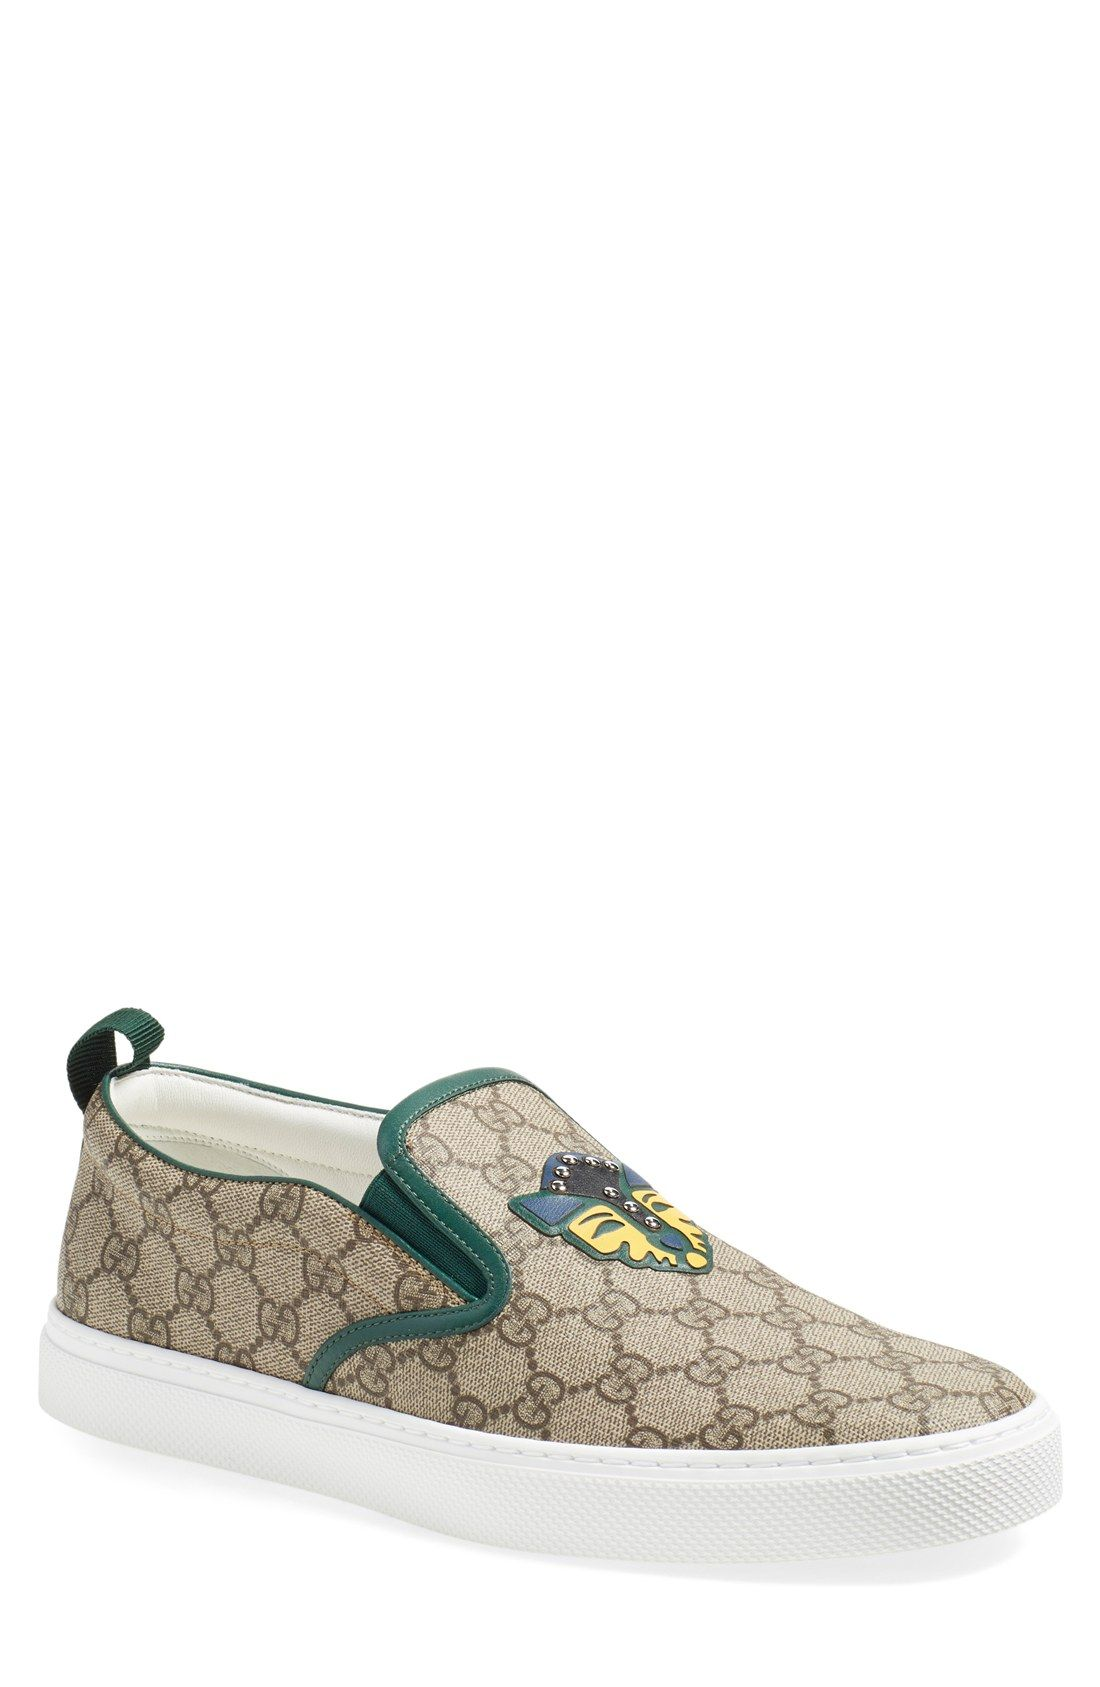 536792003 Gucci 'Dublin' Slip-On Sneaker (Men) | MEN'S FOOTWEAR in 2019 | Slip ...